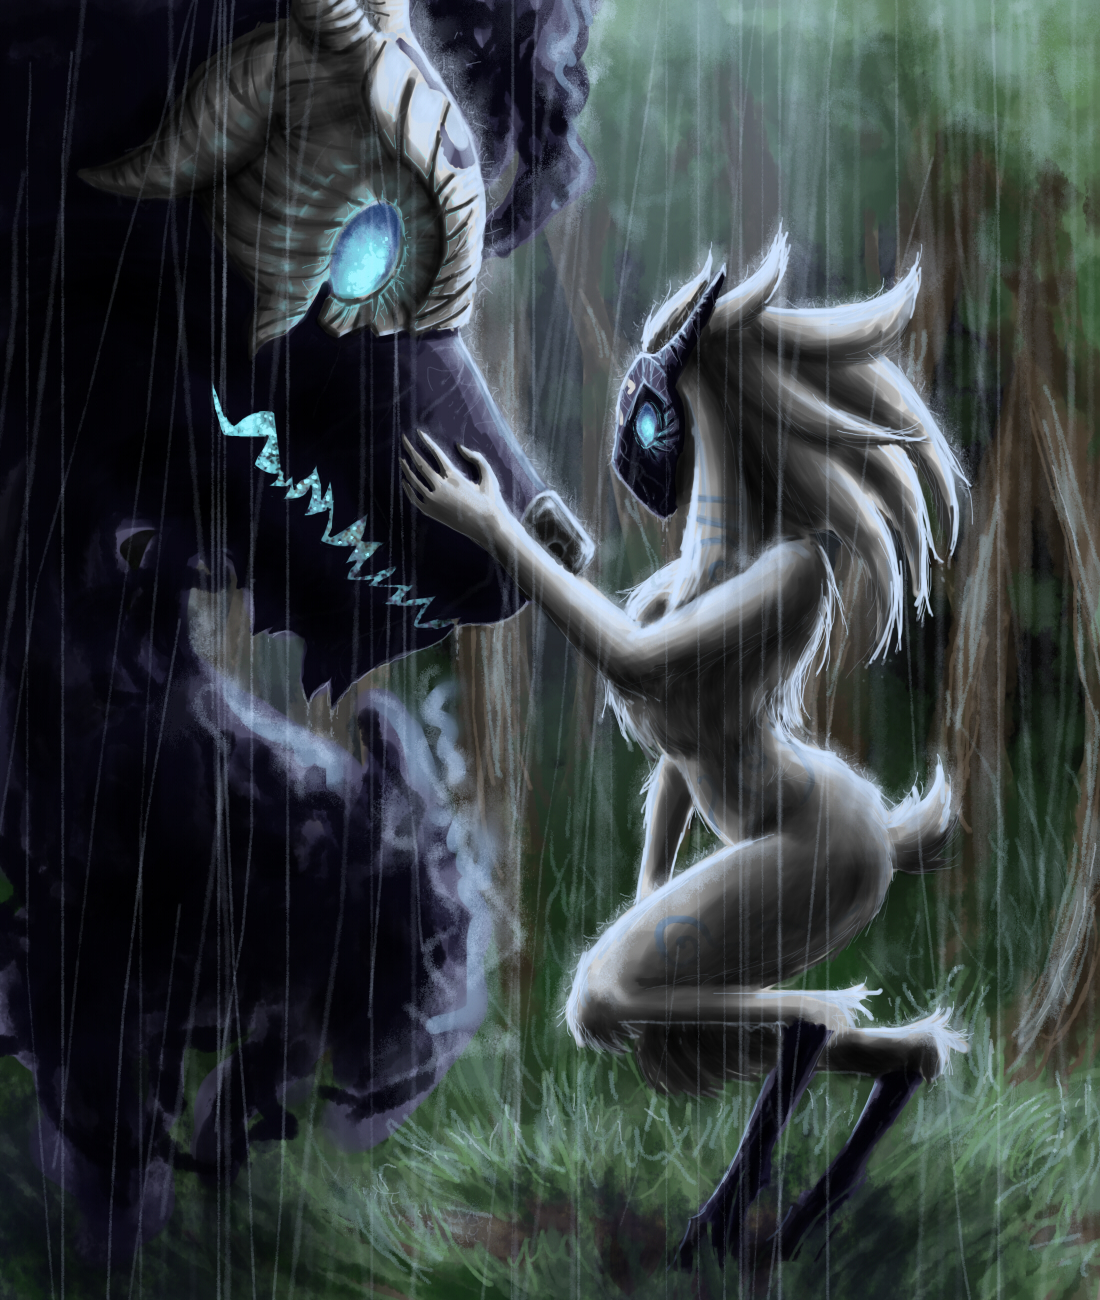 e926 5_fingers ambiguous_gender anthro canine caprine detailed_background forest fur glowing glowing_eyes grass hair kindred_(lol) lamb_(lol) league_of_legends long_hair mammal markings mask open_mouth outside raining riot_games tree tuft video_games white_fur white_hair wolf wolf_(lol) zeroakumareal